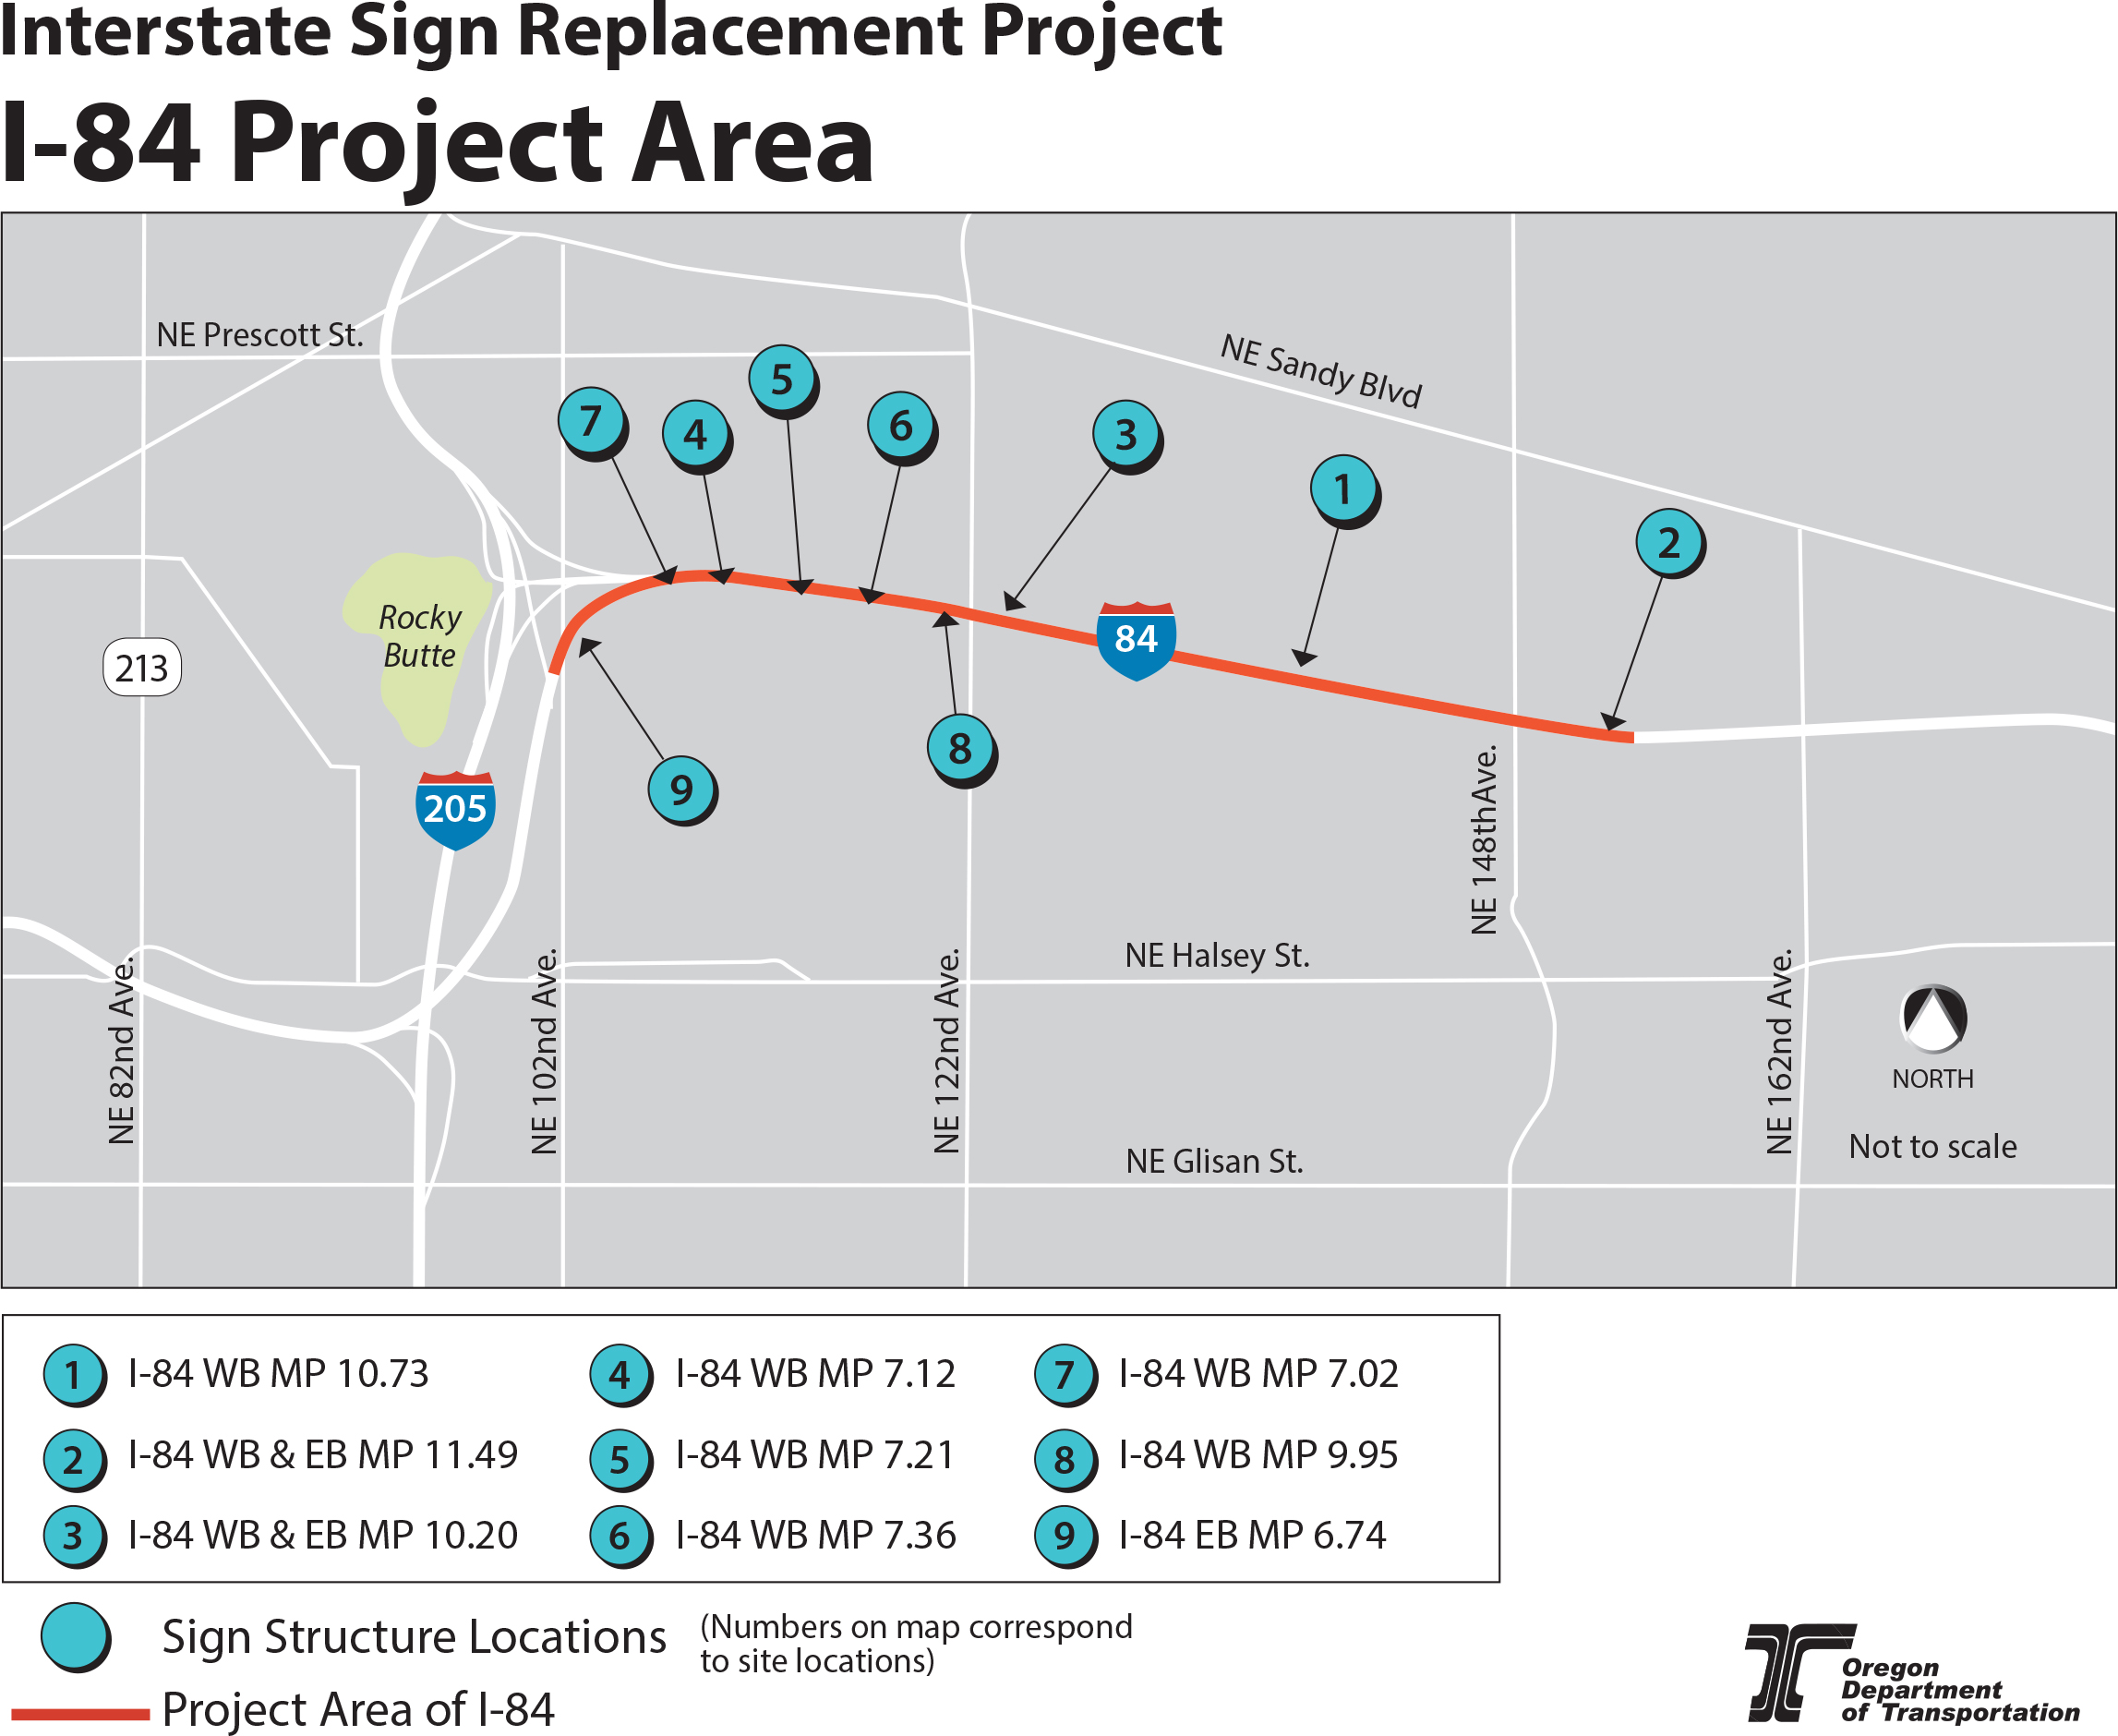 This is a map showing the project area and site locations where work will occur at different sites along I-84.